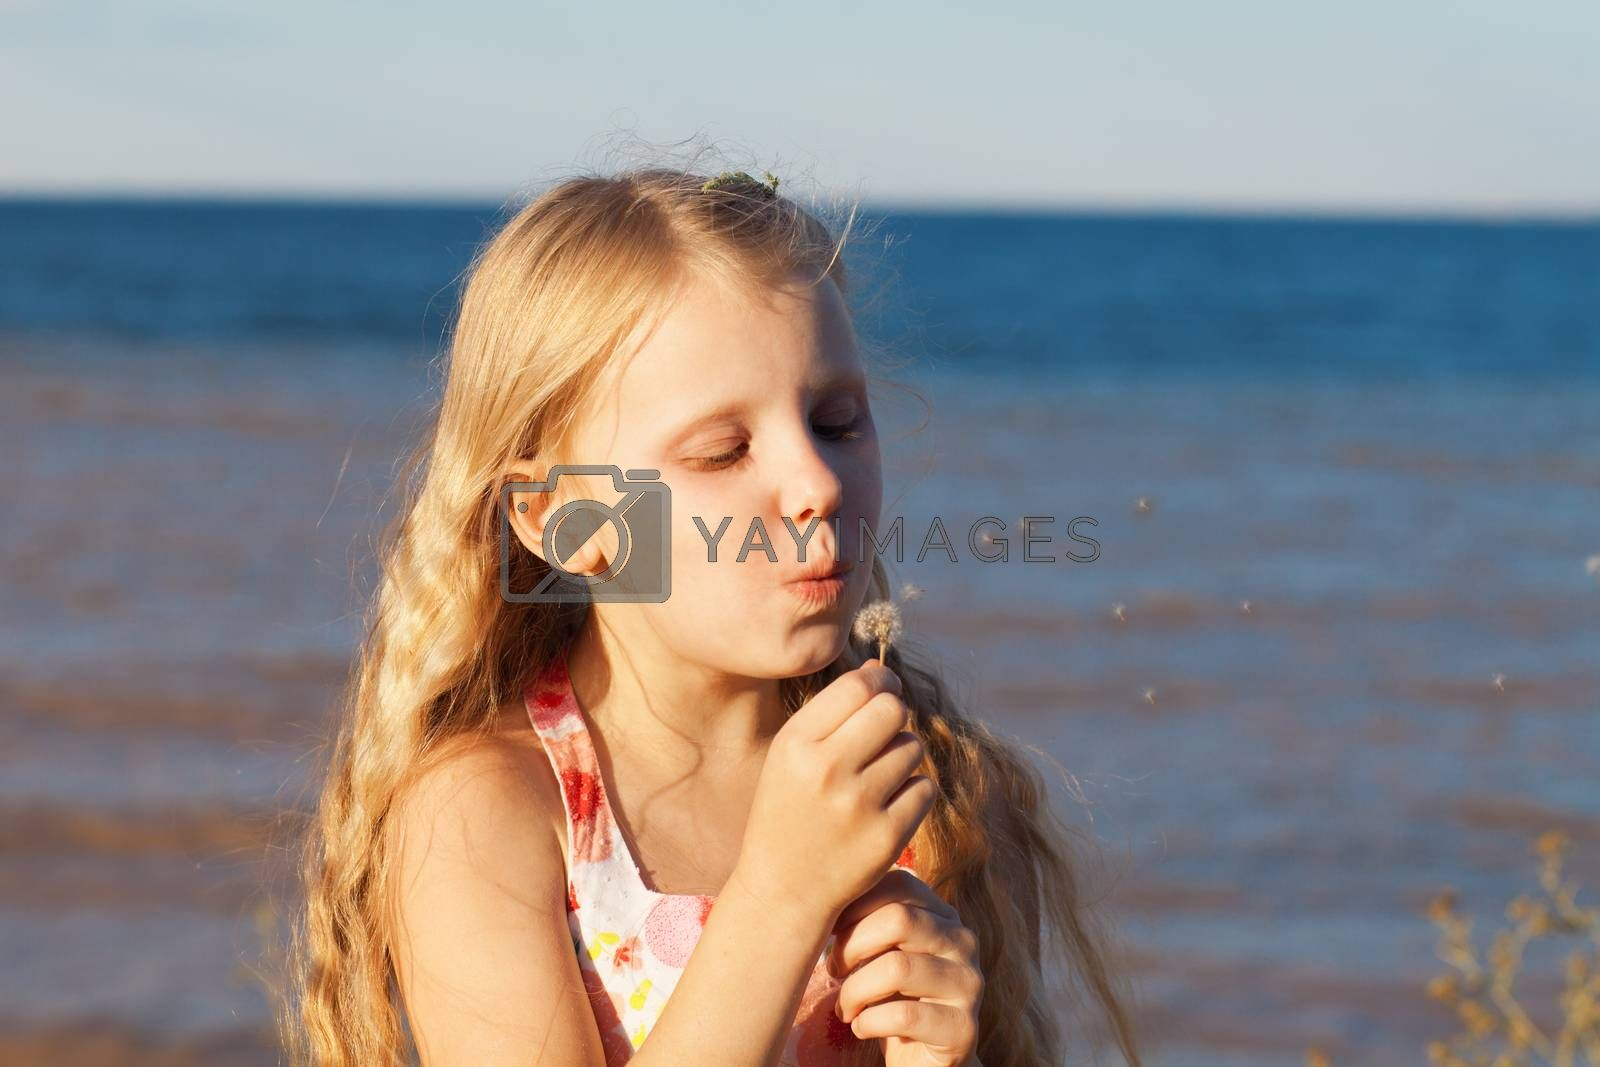 gilrl blowing on dandelion on the seashore